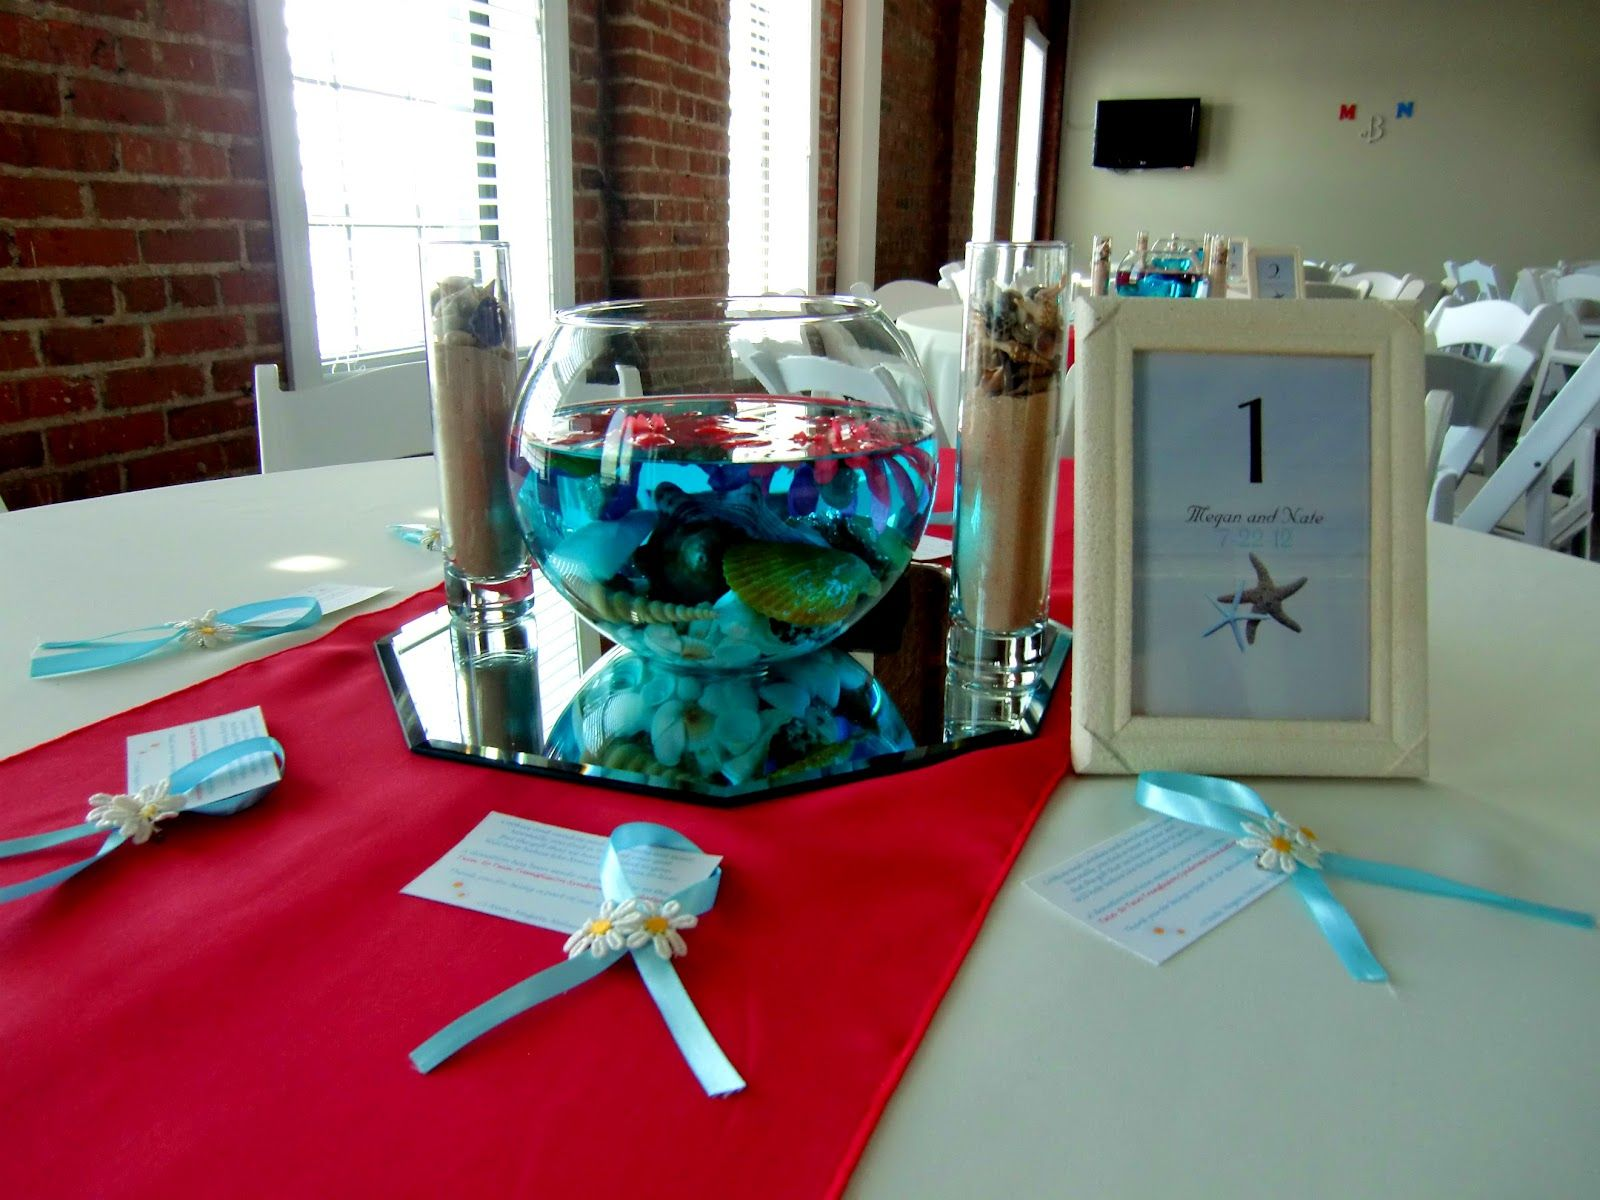 Beach themed wedding reception  Blue KoolAid was used to dye the water blue for this beach themed